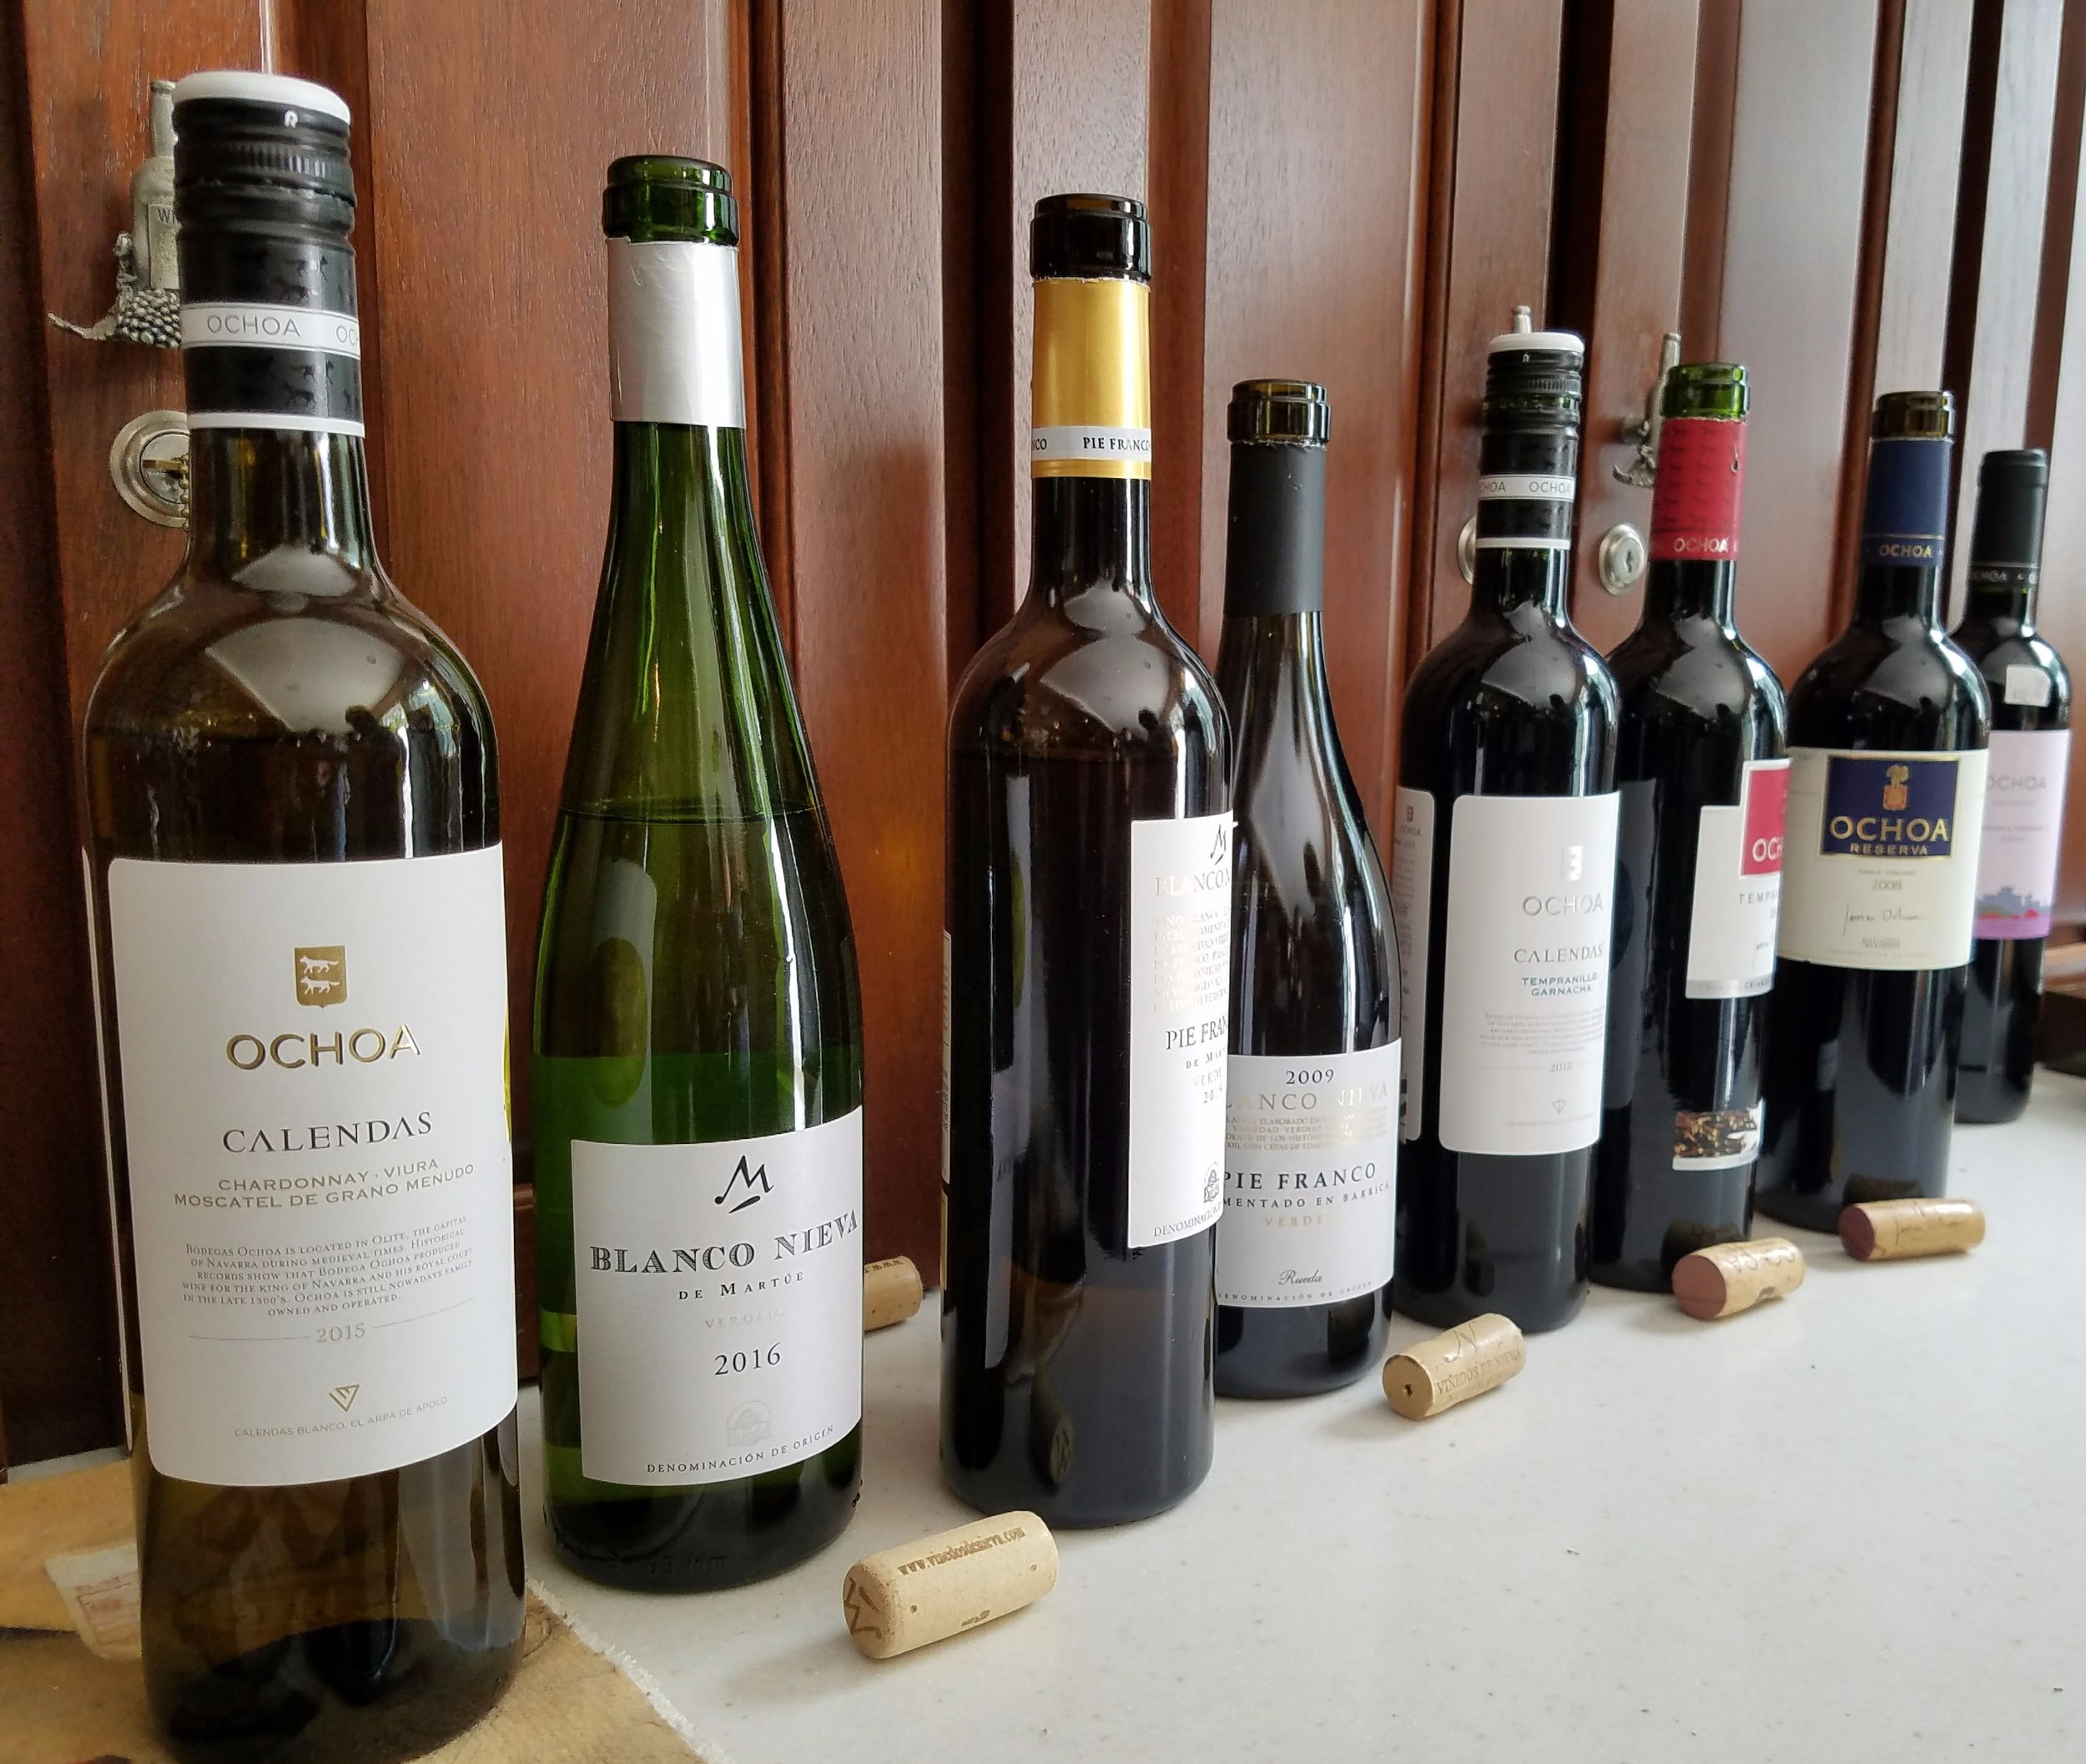 Everything from casual blends to barrel-fermented Verdejo. All of Ochoa's and Blanco Nieva's wines are great value, with only one wine eclipsing the $20 mark.